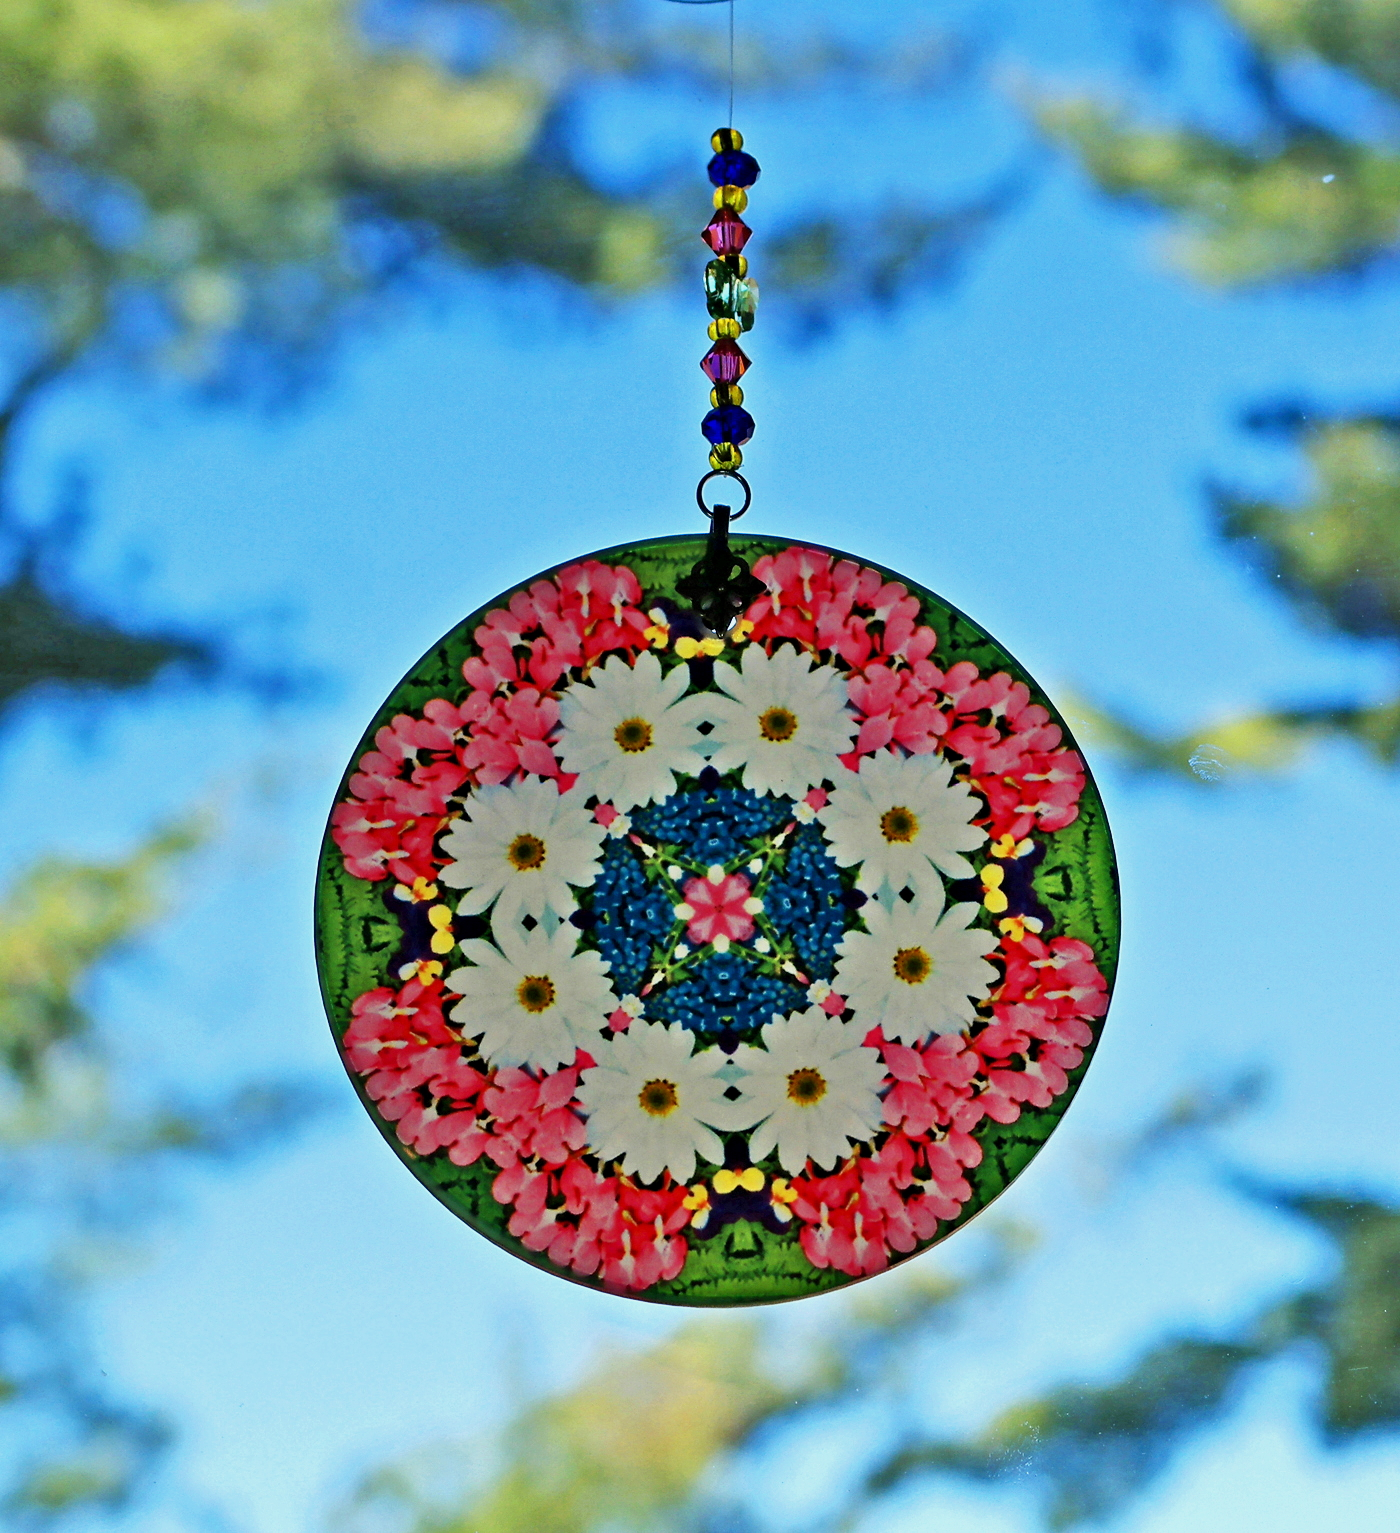 Daisy Bleeding Heart Chakra Glass Suncatcher Mandala Boho Chic New Age Sacred Geometry Hippie Kaleidoscope Meditation Zen Unique Gift For Her Love Transcends